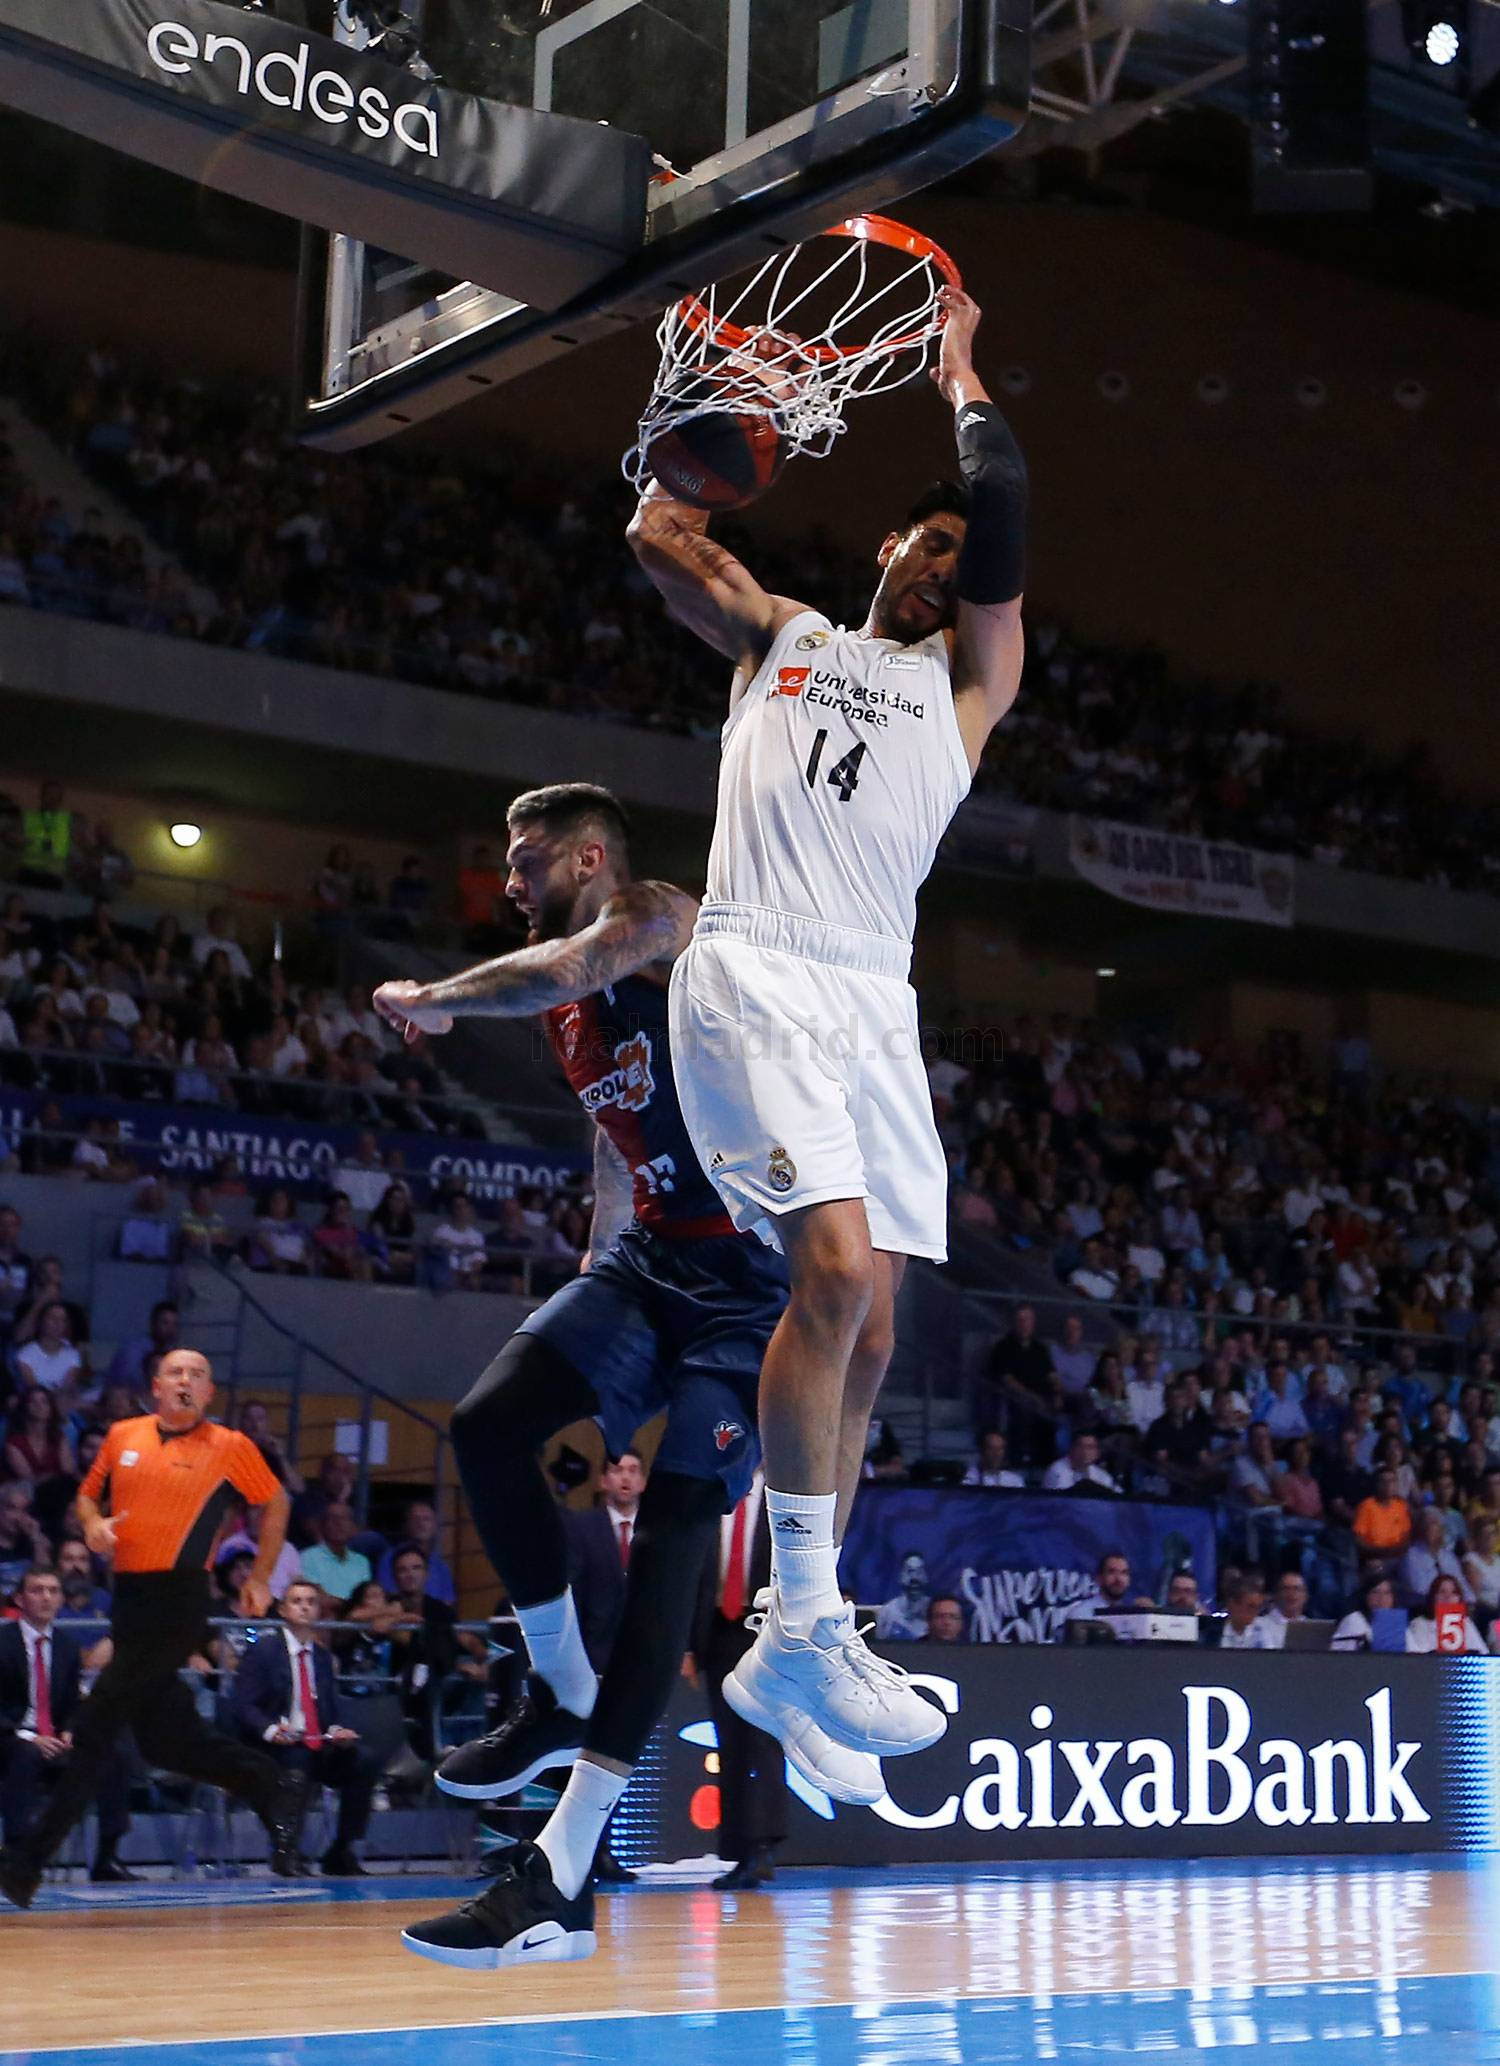 Real Madrid - Real Madrid - KIROLBET Baskonia - 22-09-2018